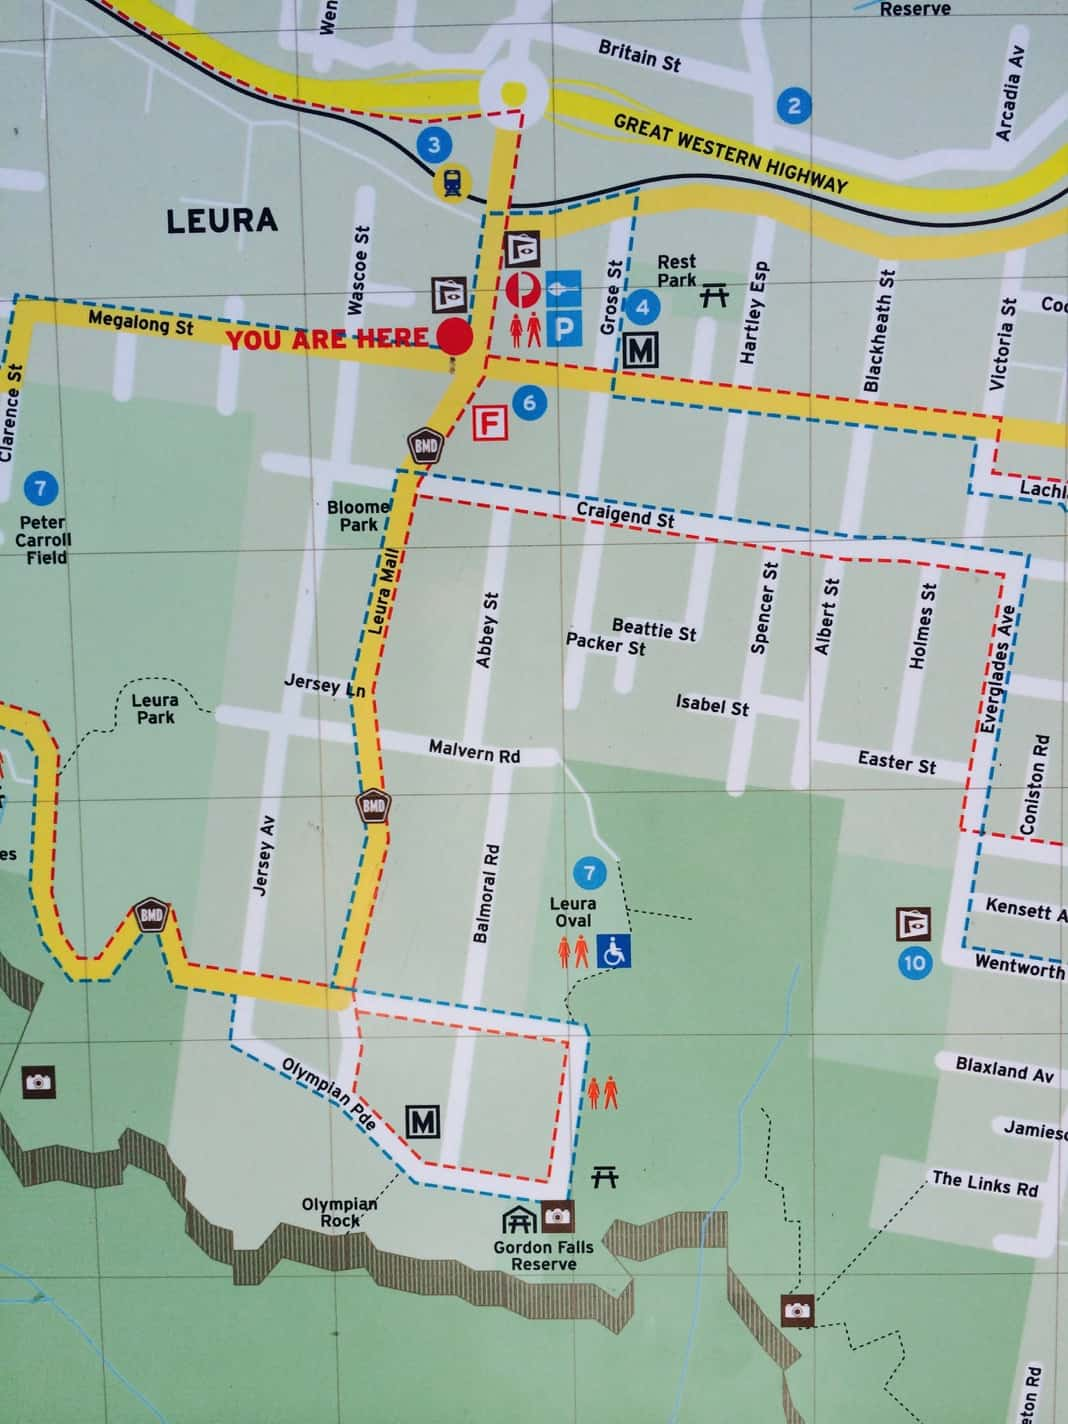 Street Map of Leura showing directions to Olympian Rock